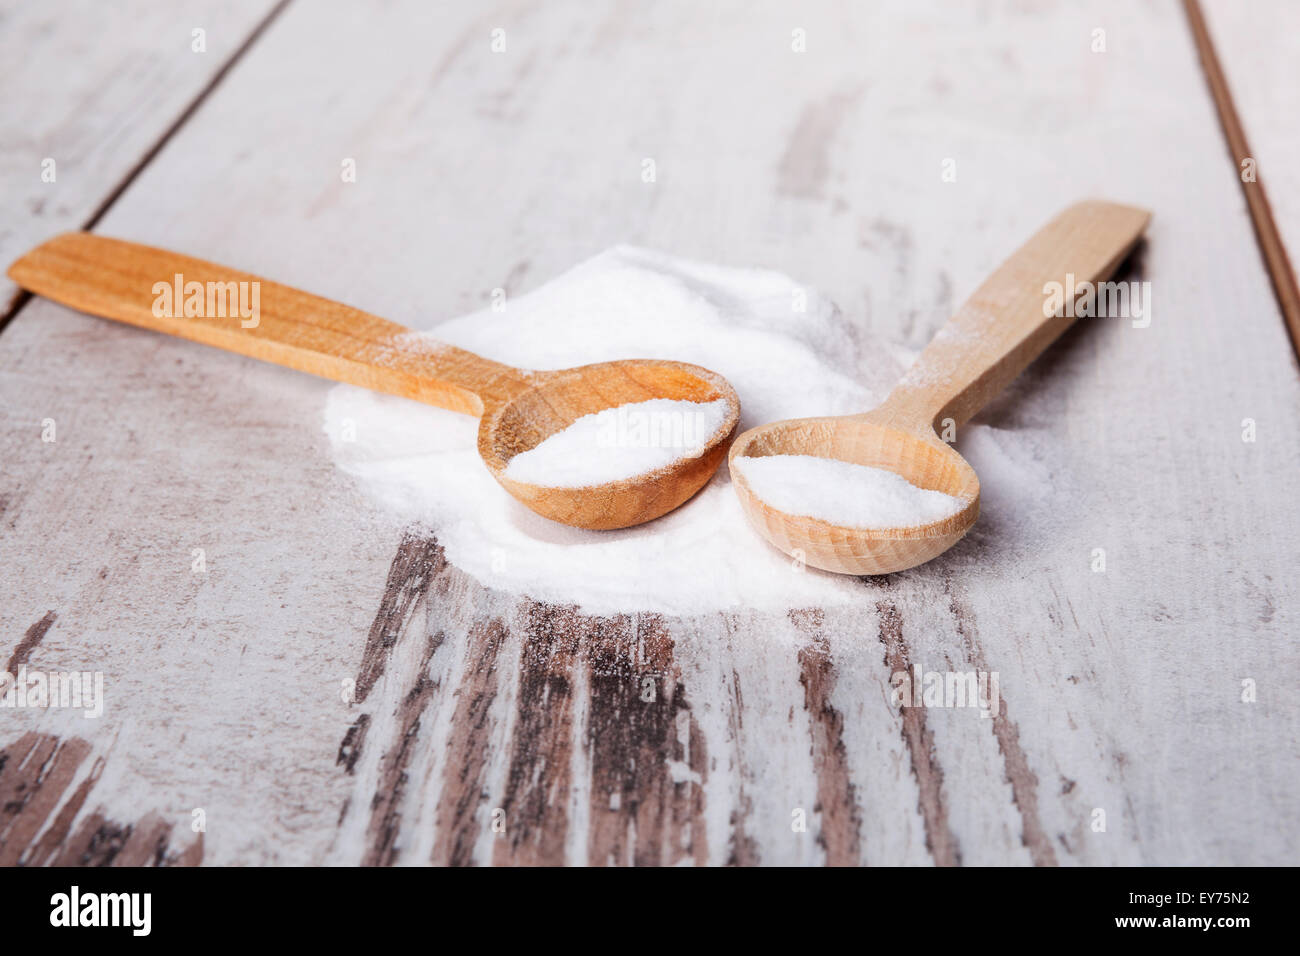 Baking soda on wooden spoon on white wooden textured background. - Stock Image